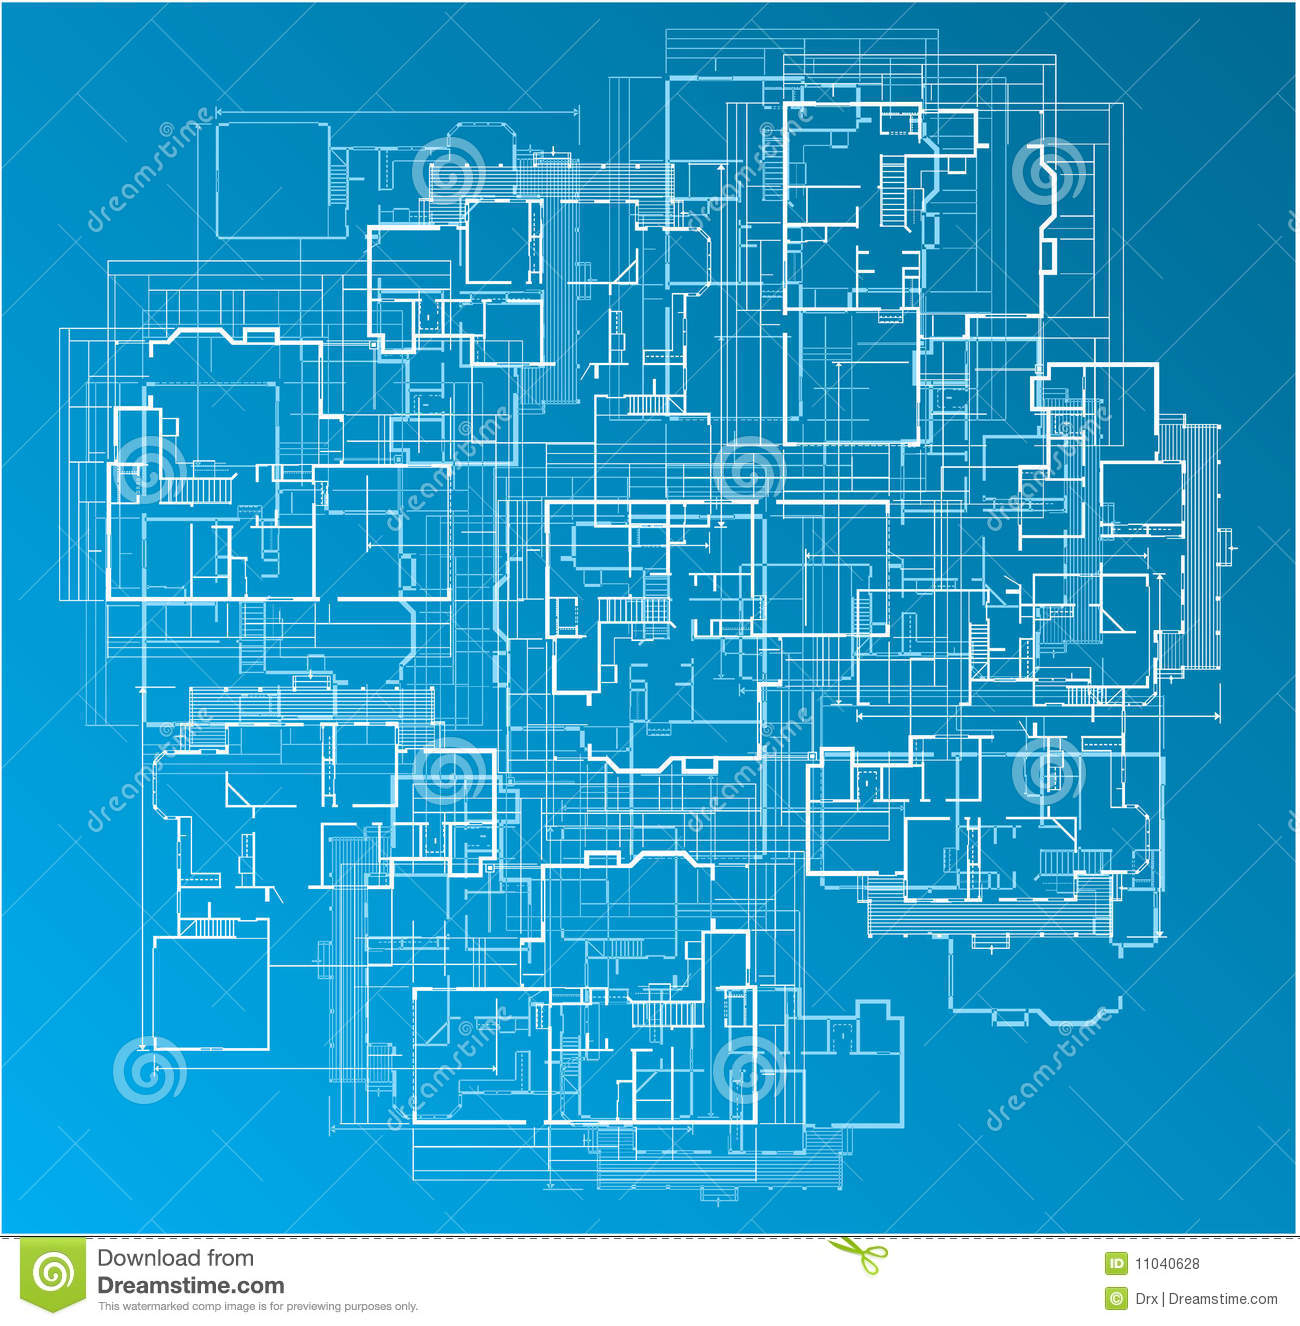 Superior Building Blueprint